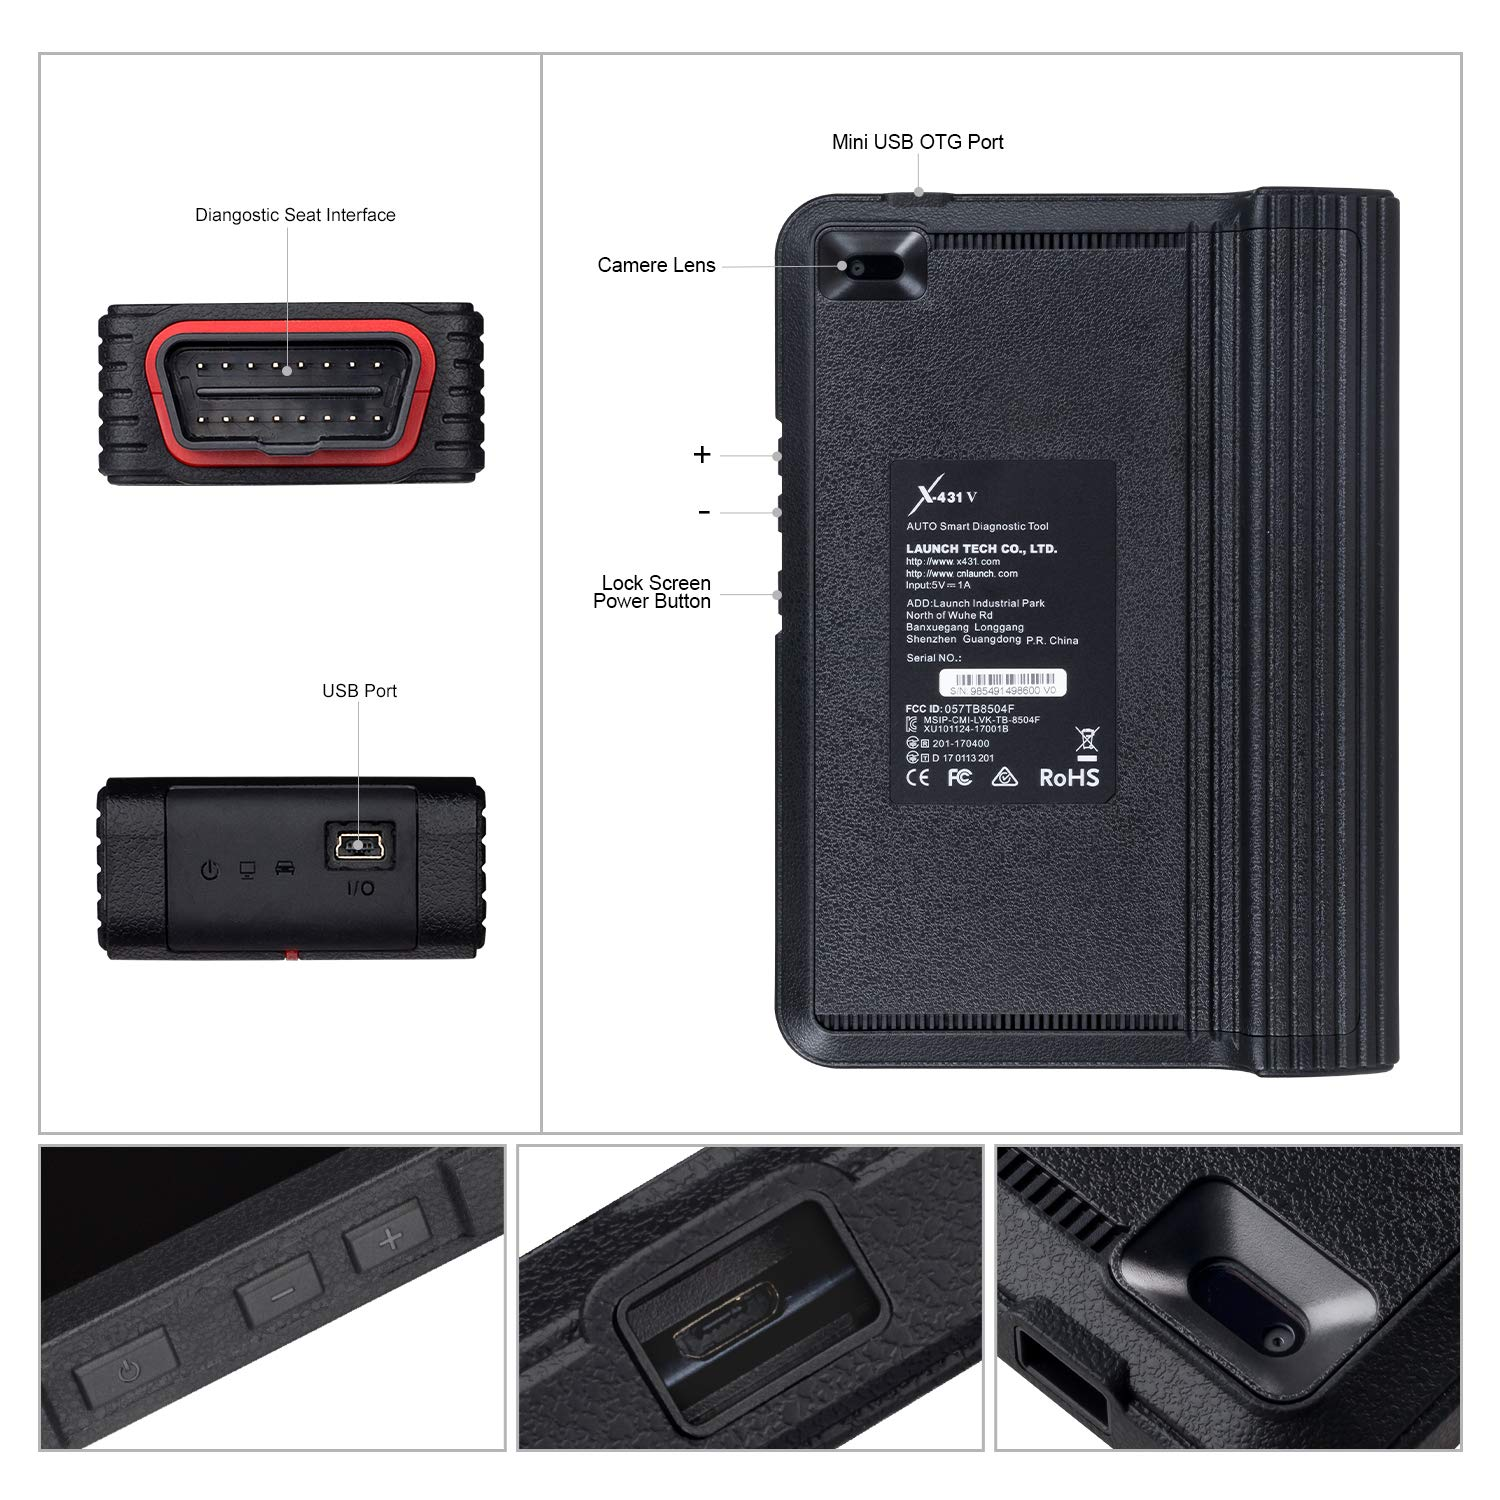 LAUNCH X431 V PRO Bi-Directional OBD2 Scan Tool Actuation Test,ECU Coding,Key Programming, Reset Functions,One-Key Generate Vehicle Health Report,Live Data Graphing-Free Update by LAUNCH (Image #9)